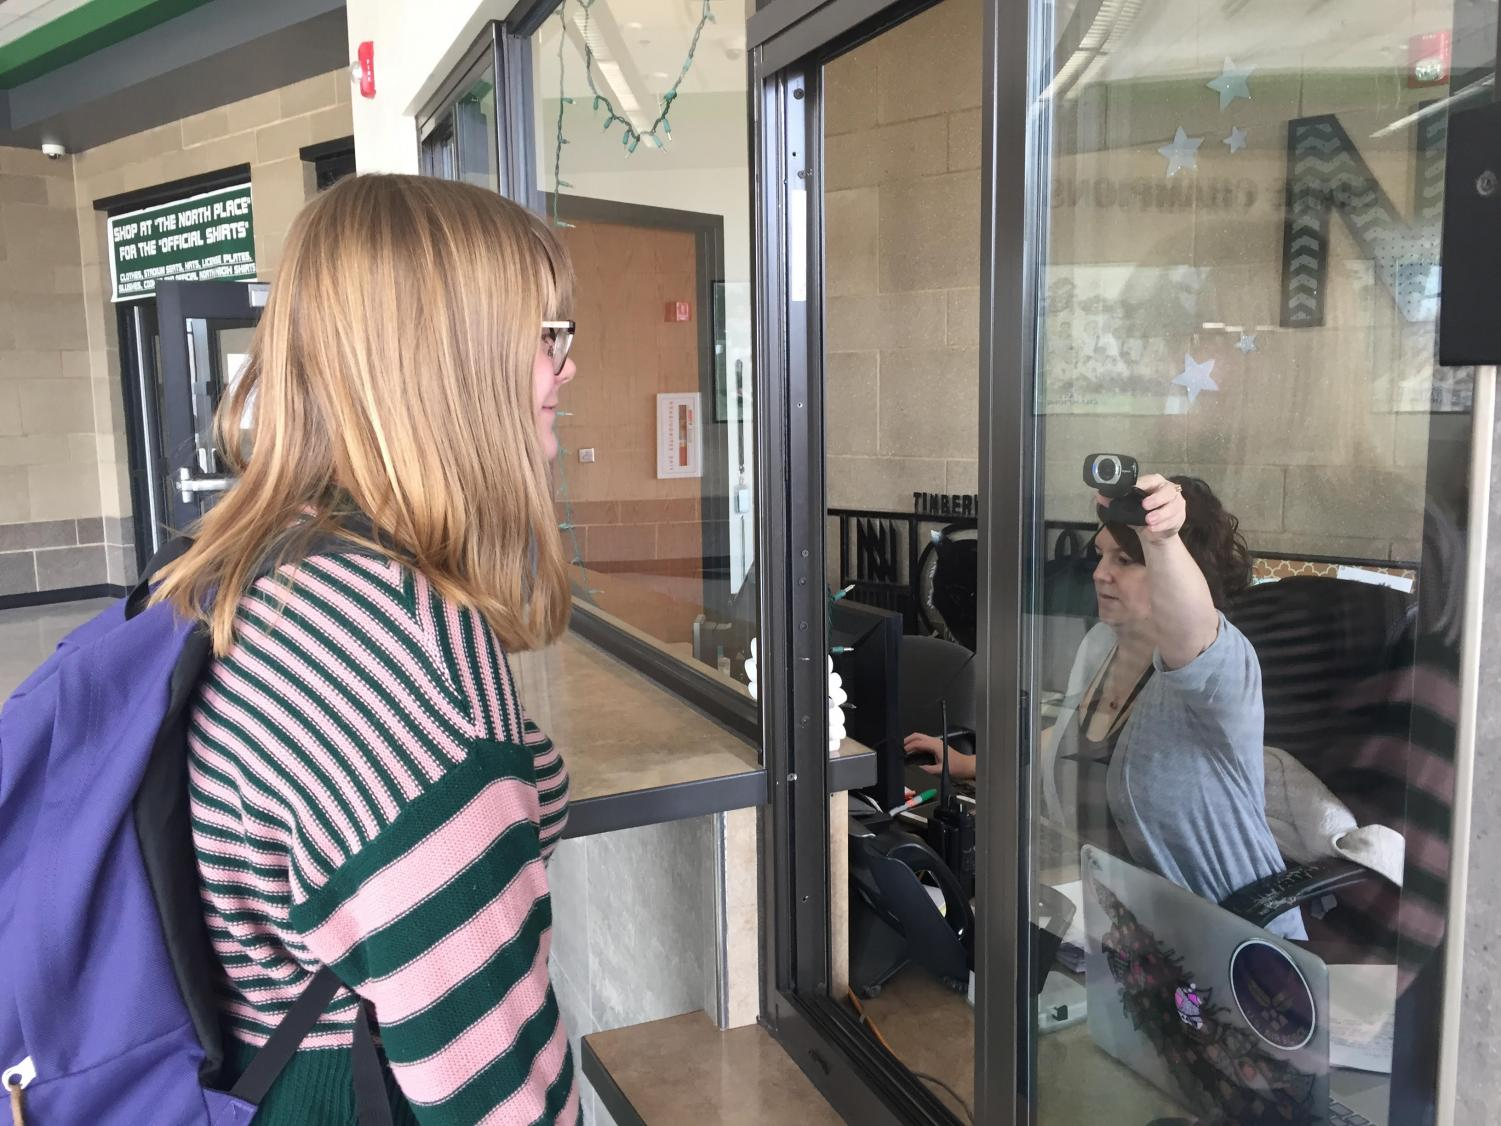 Zoe Kelley getting an ID at the commons office.